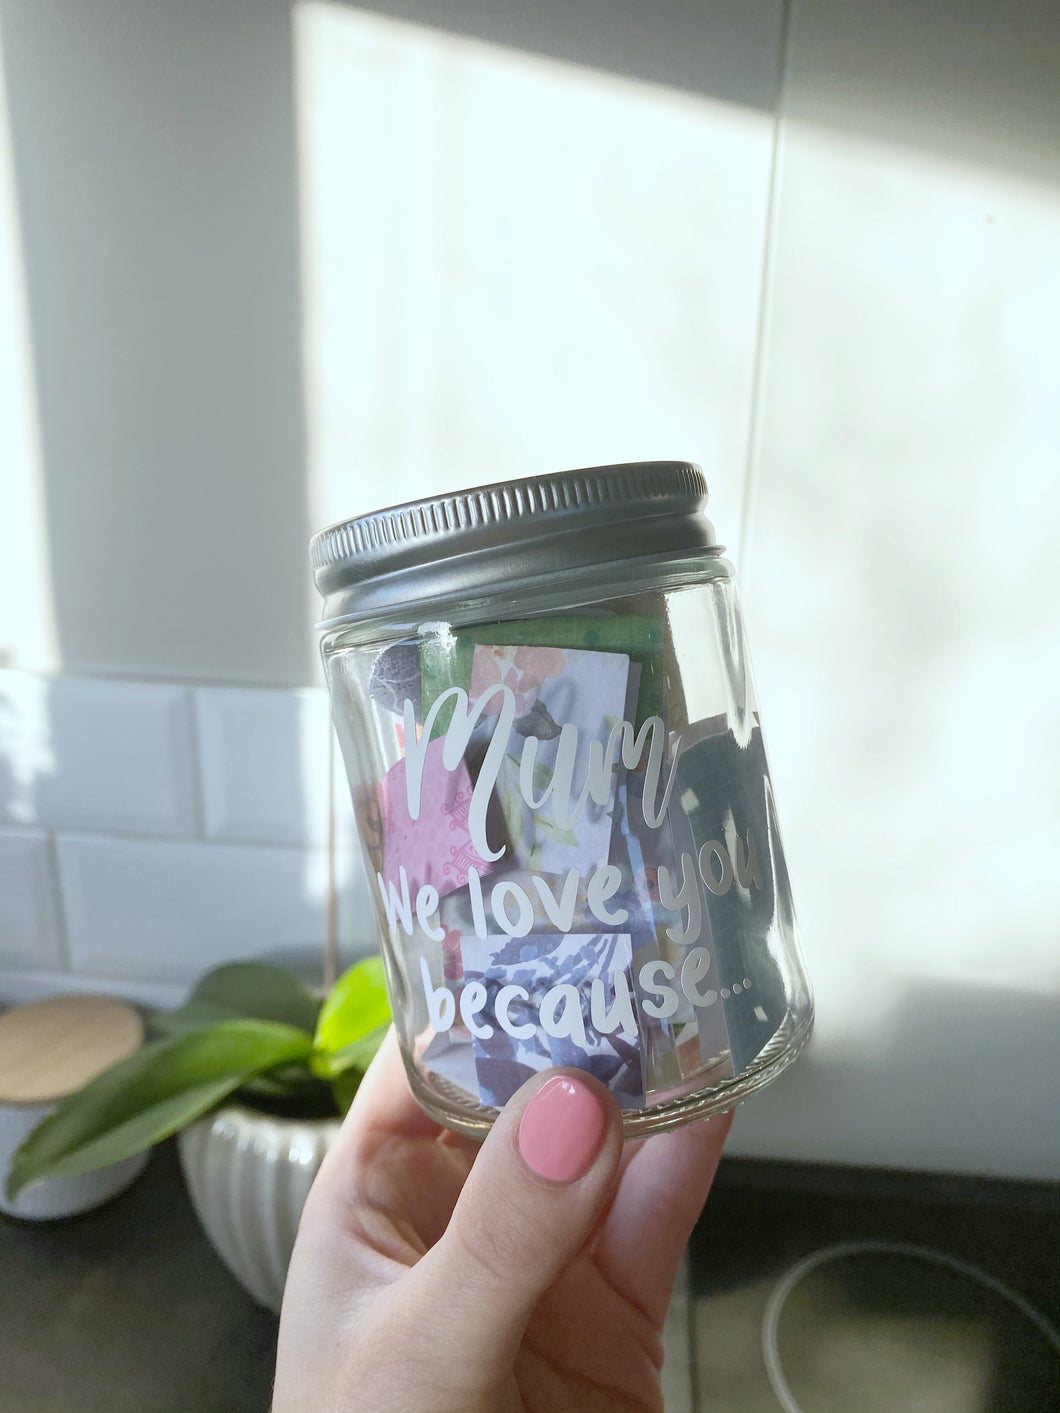 """We love you because..."" Jars"